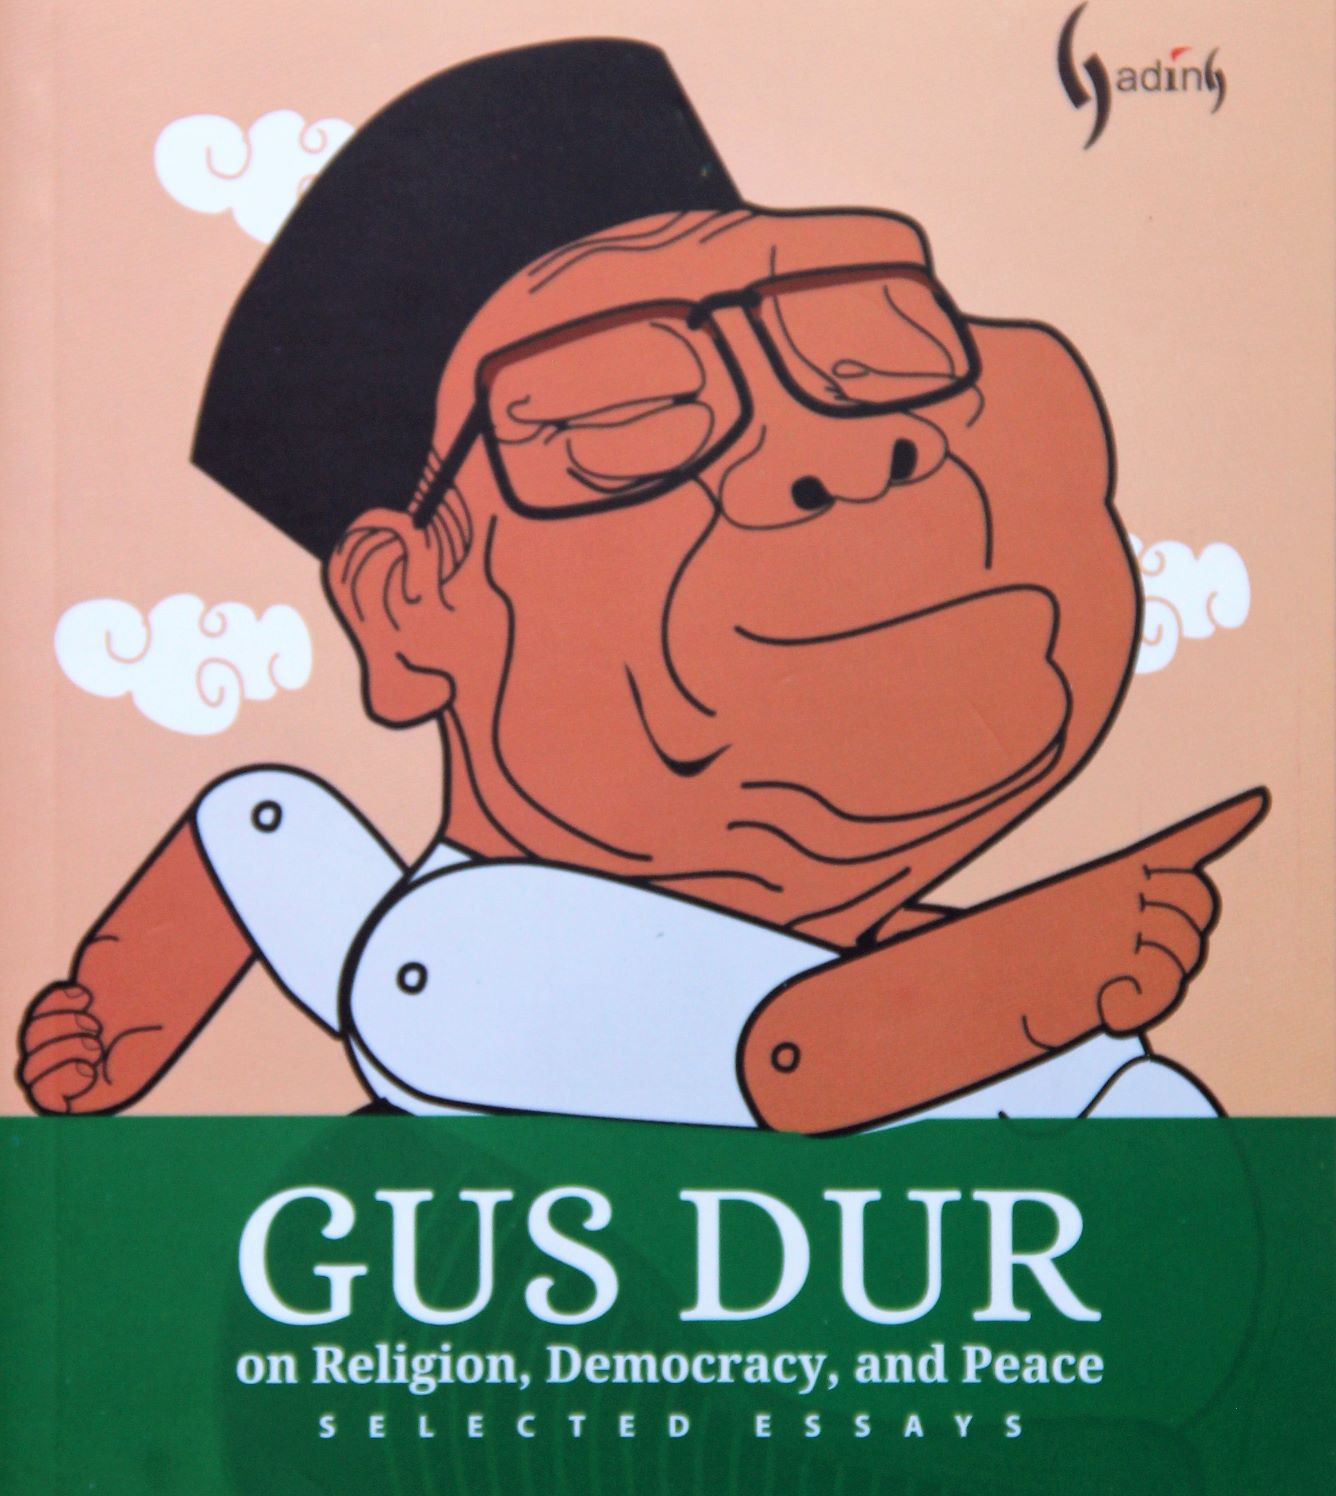 'Gus Dur on Religion, Democracy and Peace': Showcasing an Indonesian intellectual